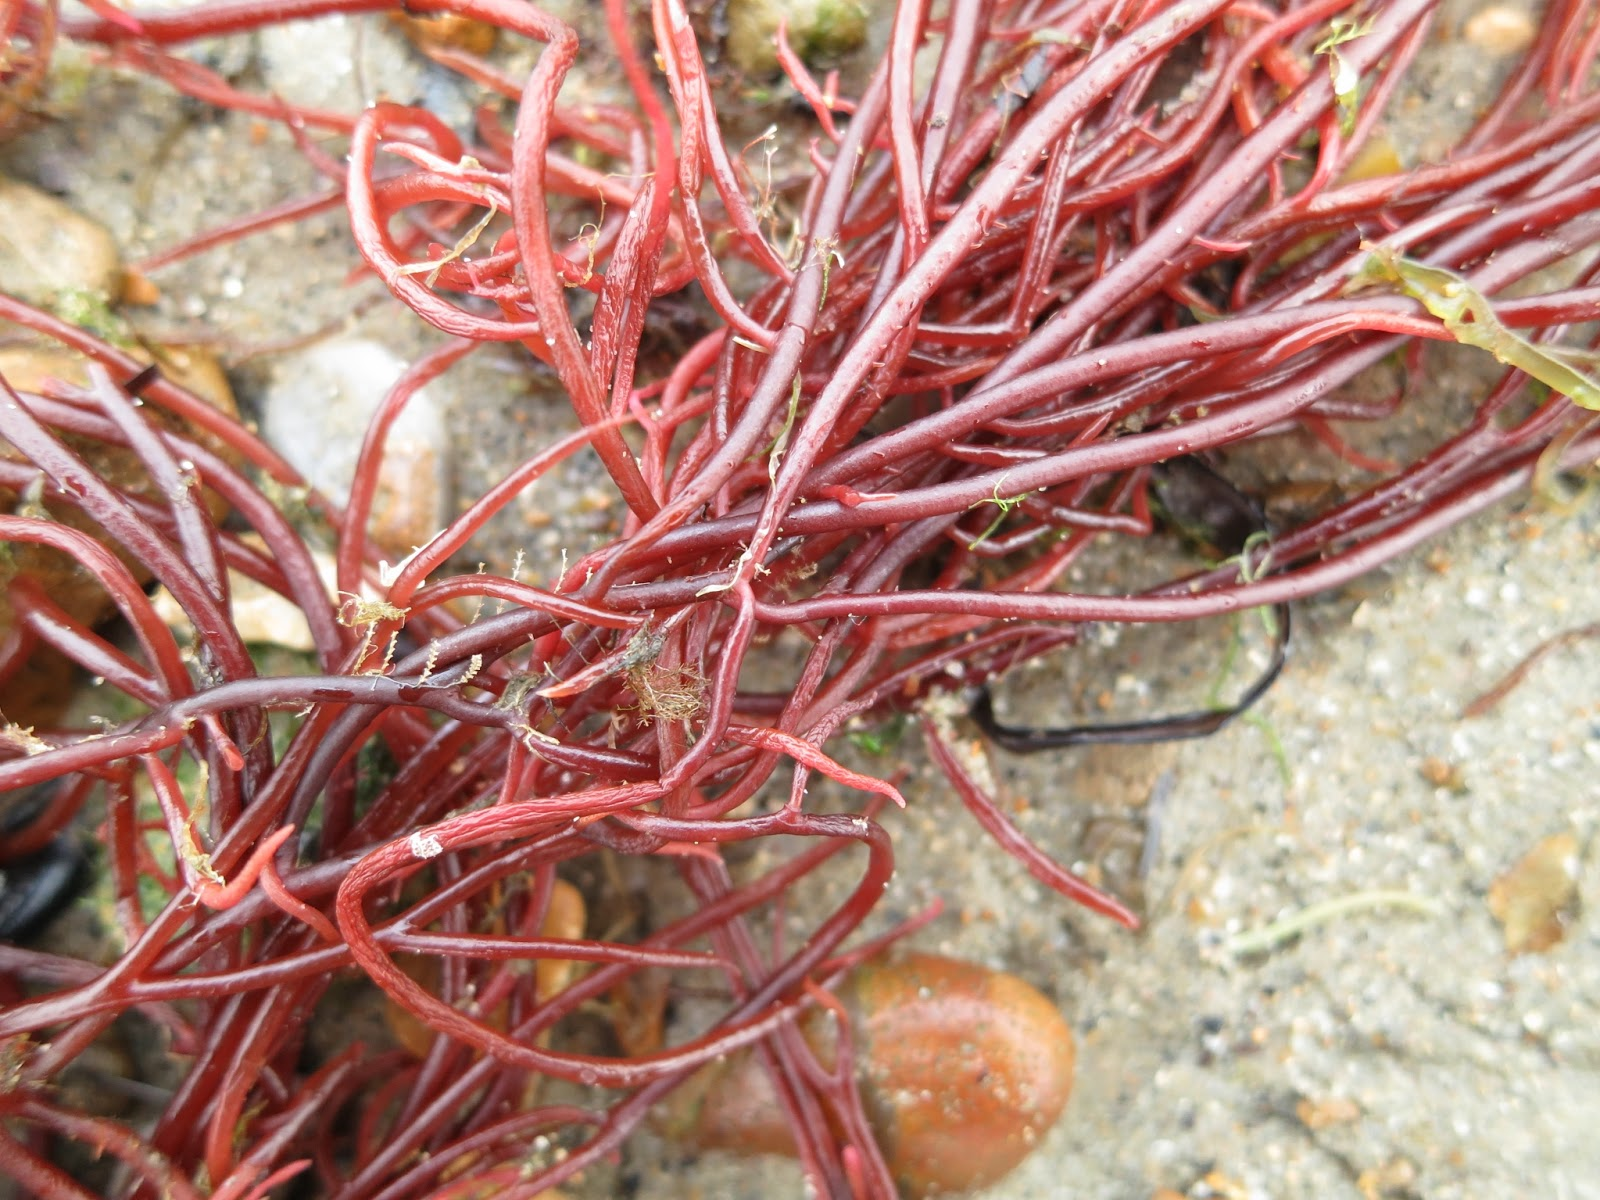 A red seaweed with long fleshy strings for leaves (well, I know they're not actually leaves but . . . )